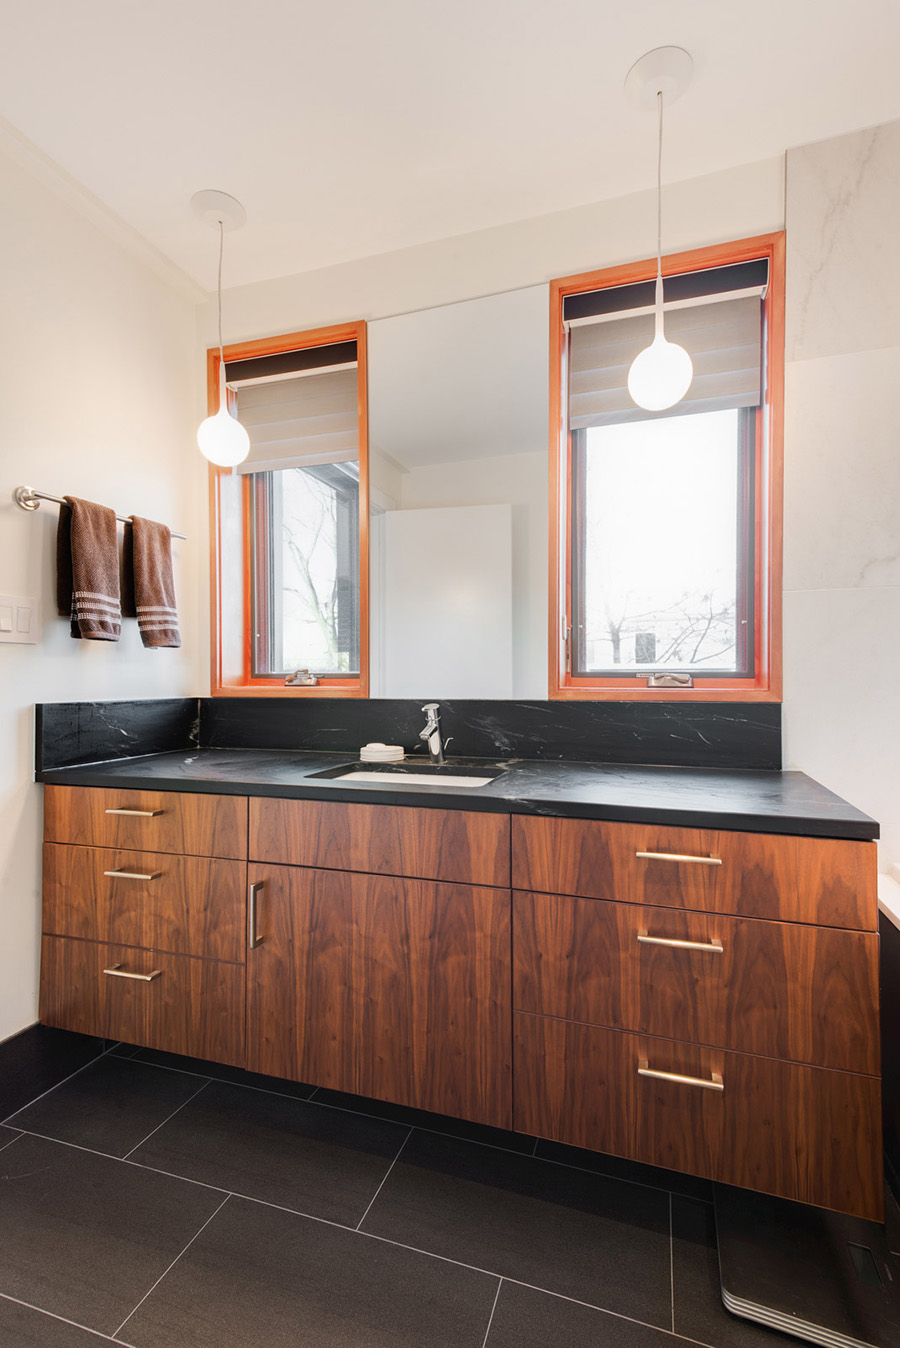 Bathroom with wood vanity and black marble countertop stainless steel fixtures and pendant lights